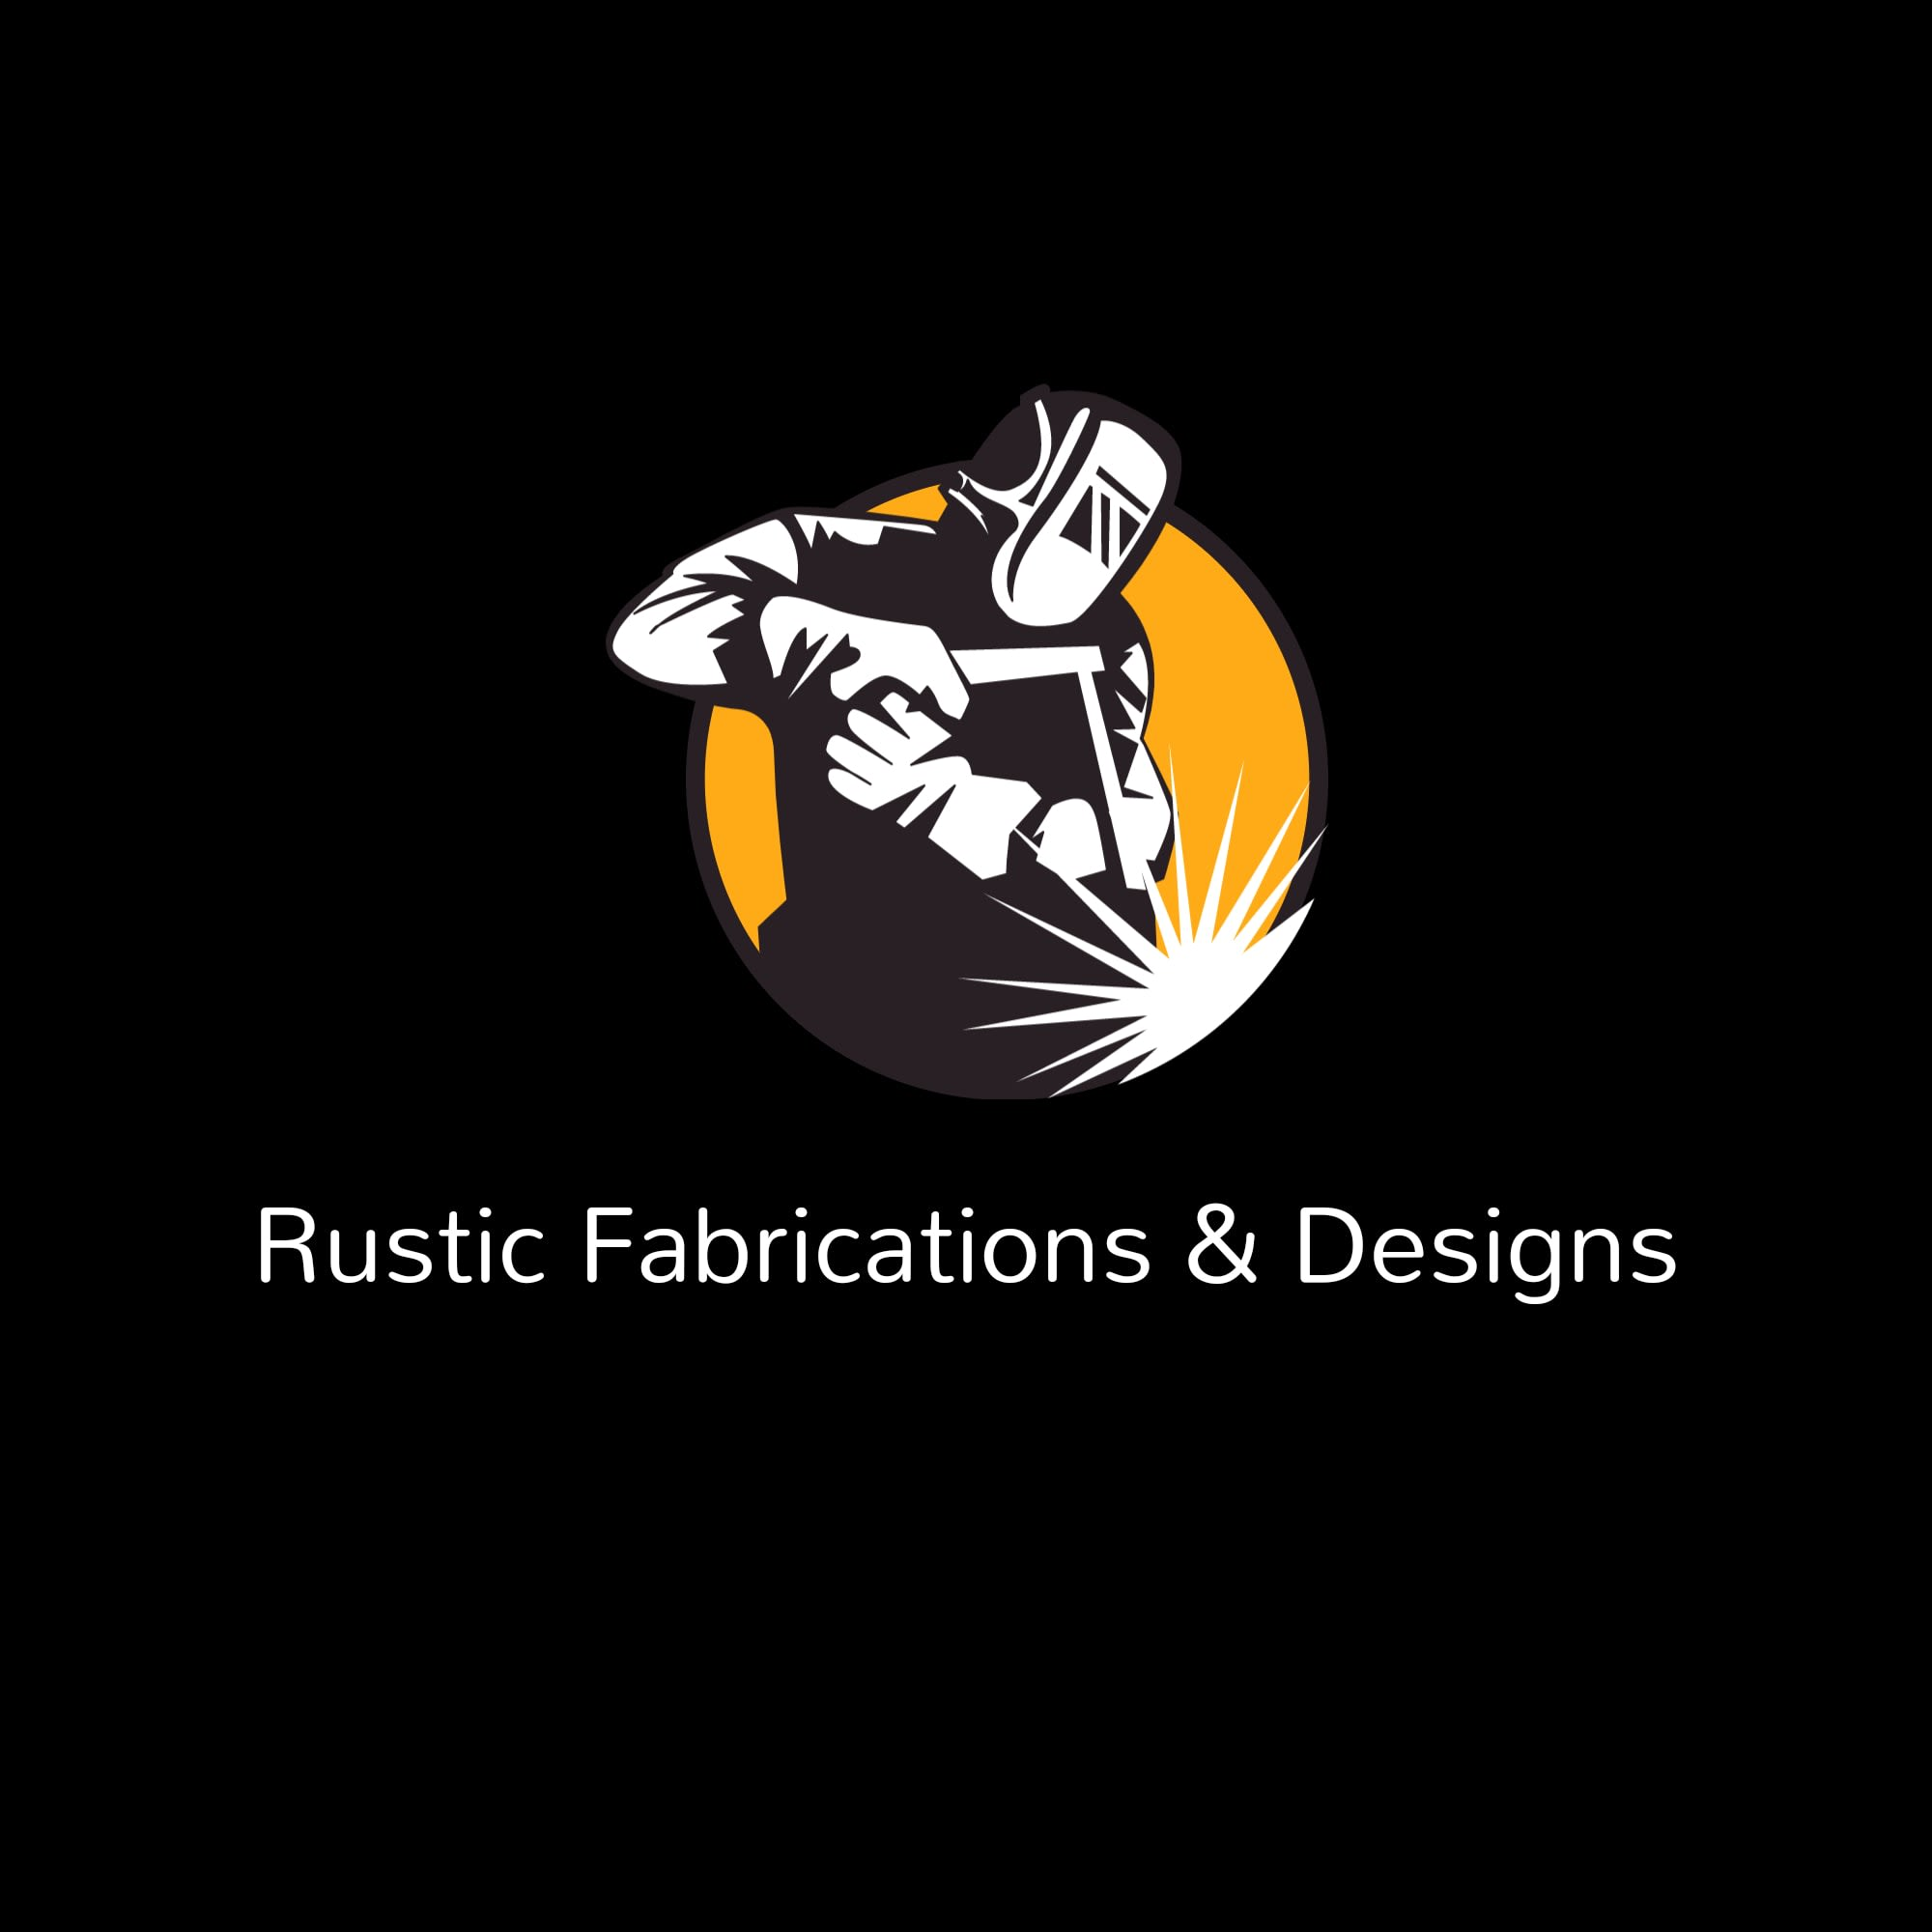 Rustic Fabrications & Design